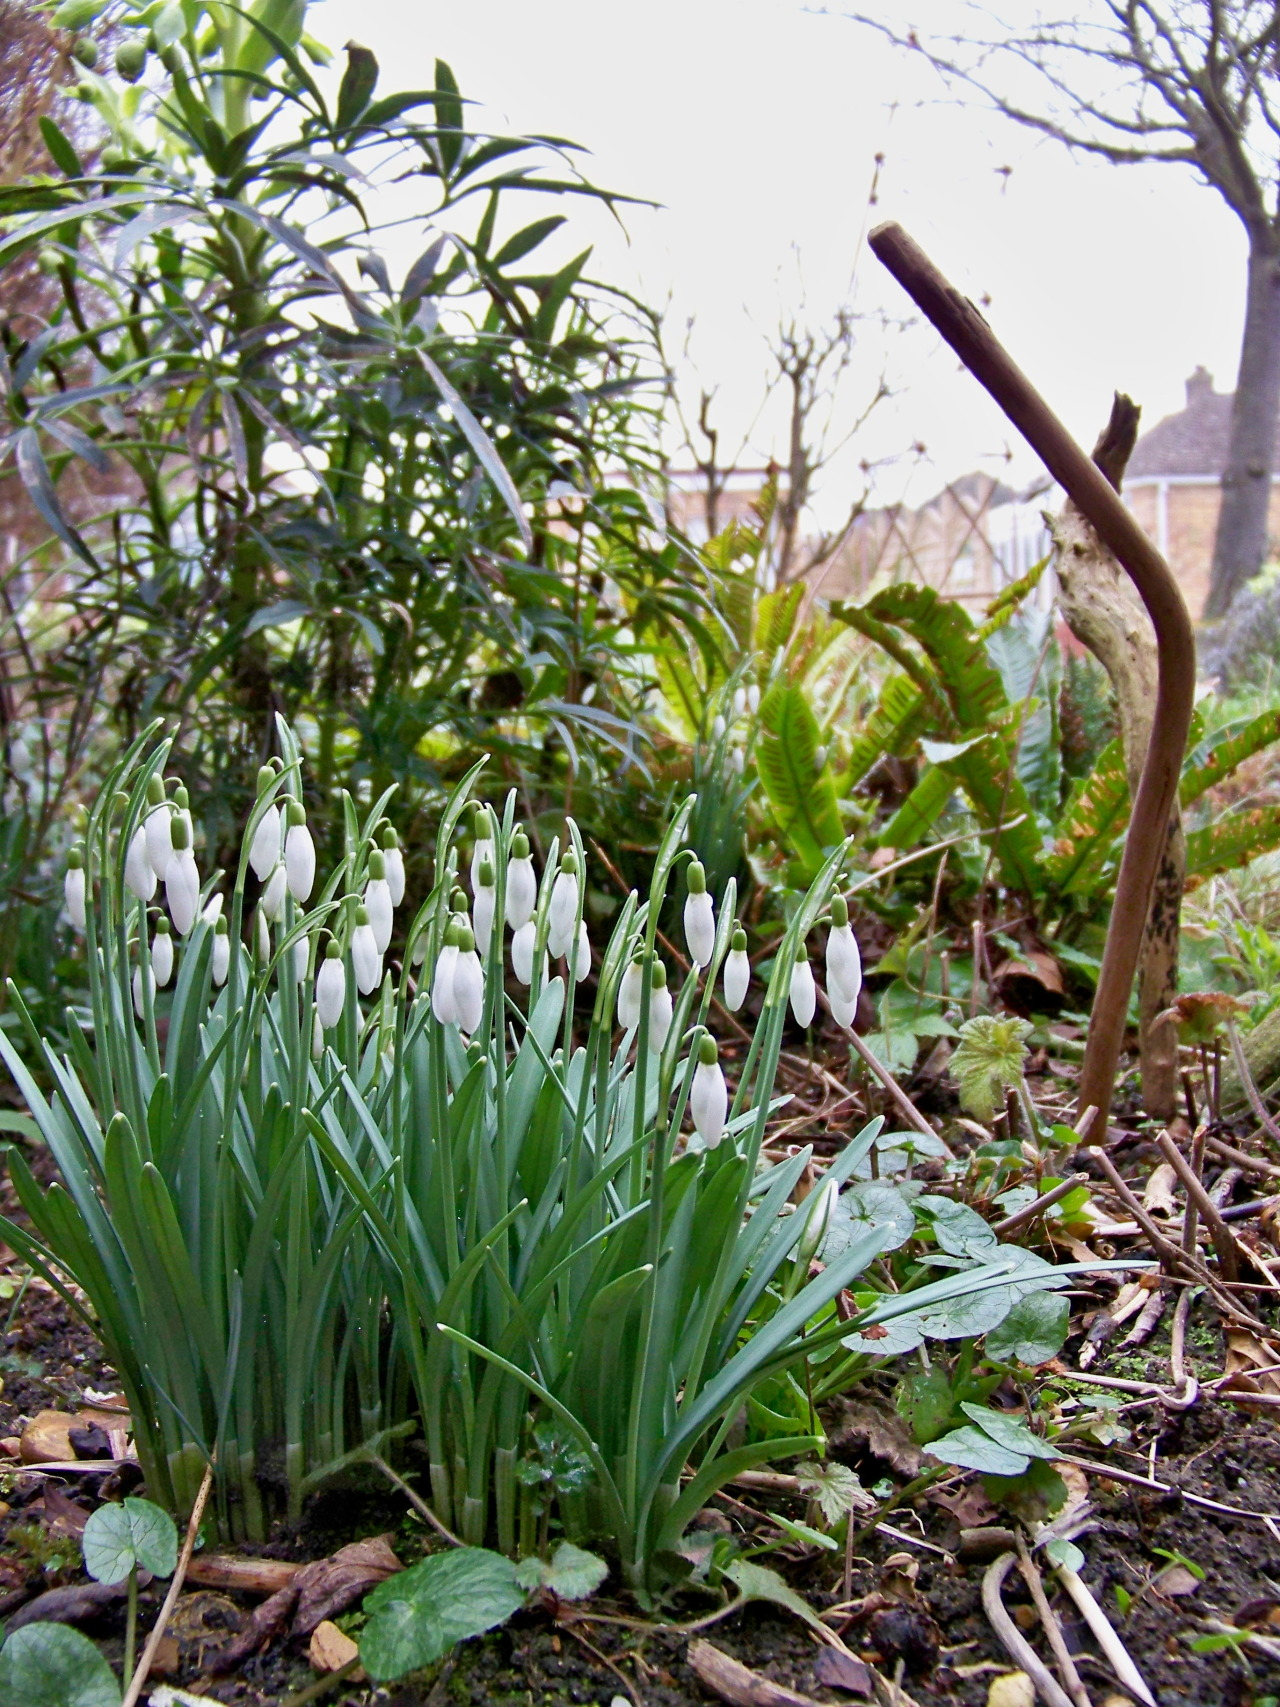 Spring is slowly making anappearancein the garden but it is still very cold and grey. The forecast has promised a little thinning of the clouds tomorrow.